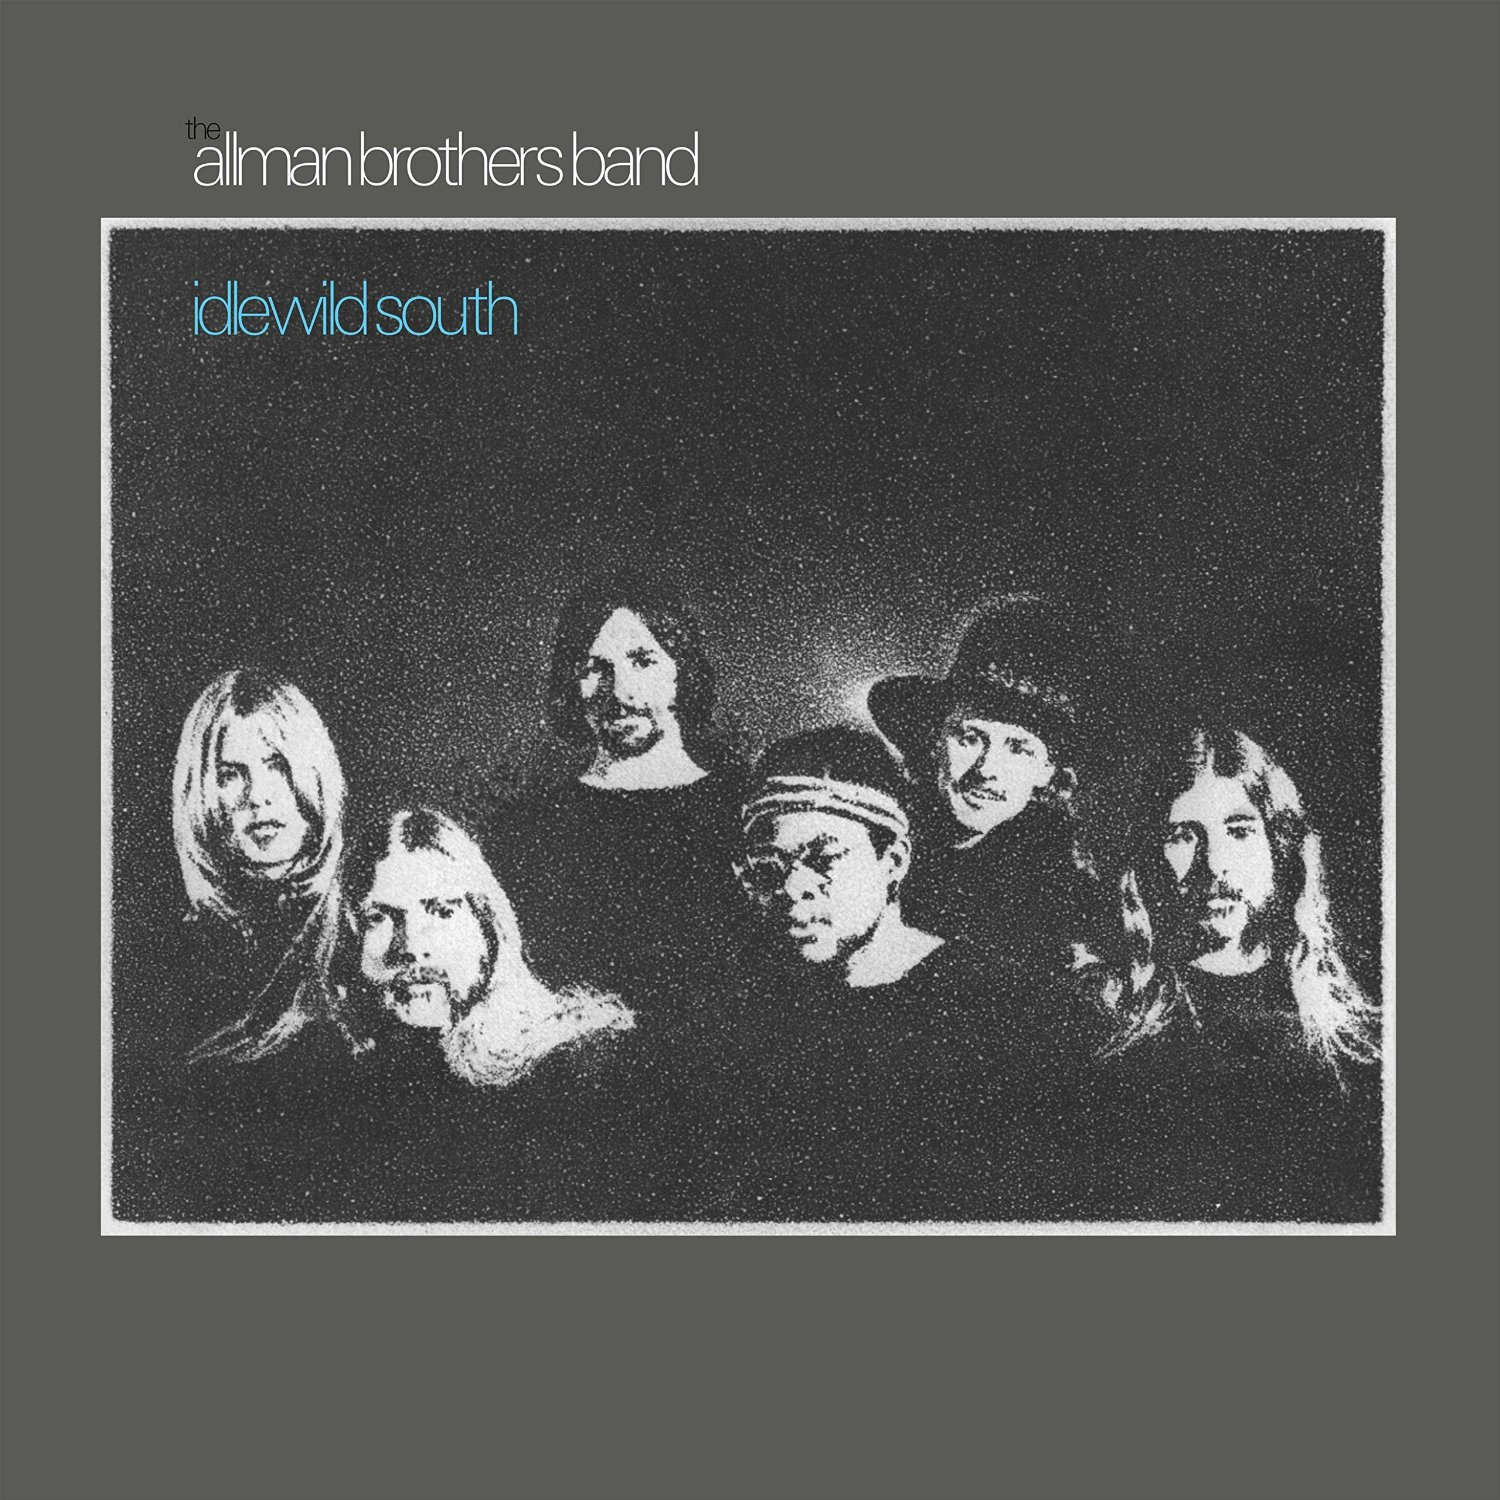 The Allman Brothers Band: Idlewild South (1970) [45th Anniversary Edition, 2015] [High Fidelity Pure Audio Blu-Ray Disc]